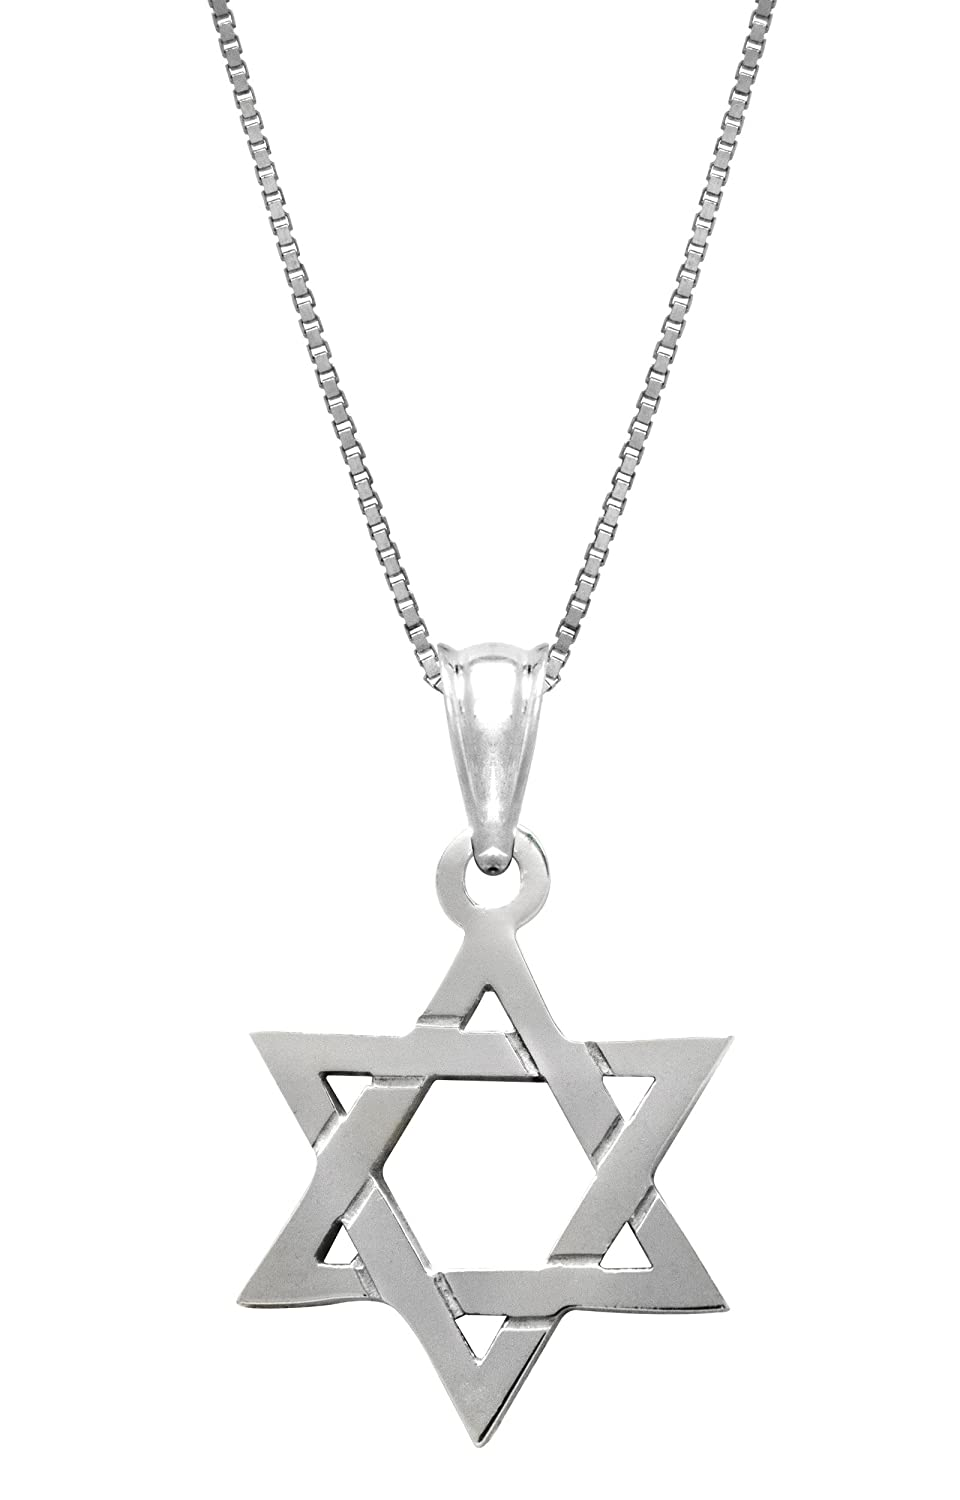 namicharms by him necklaces of bar star for magen silver david sterling necklace